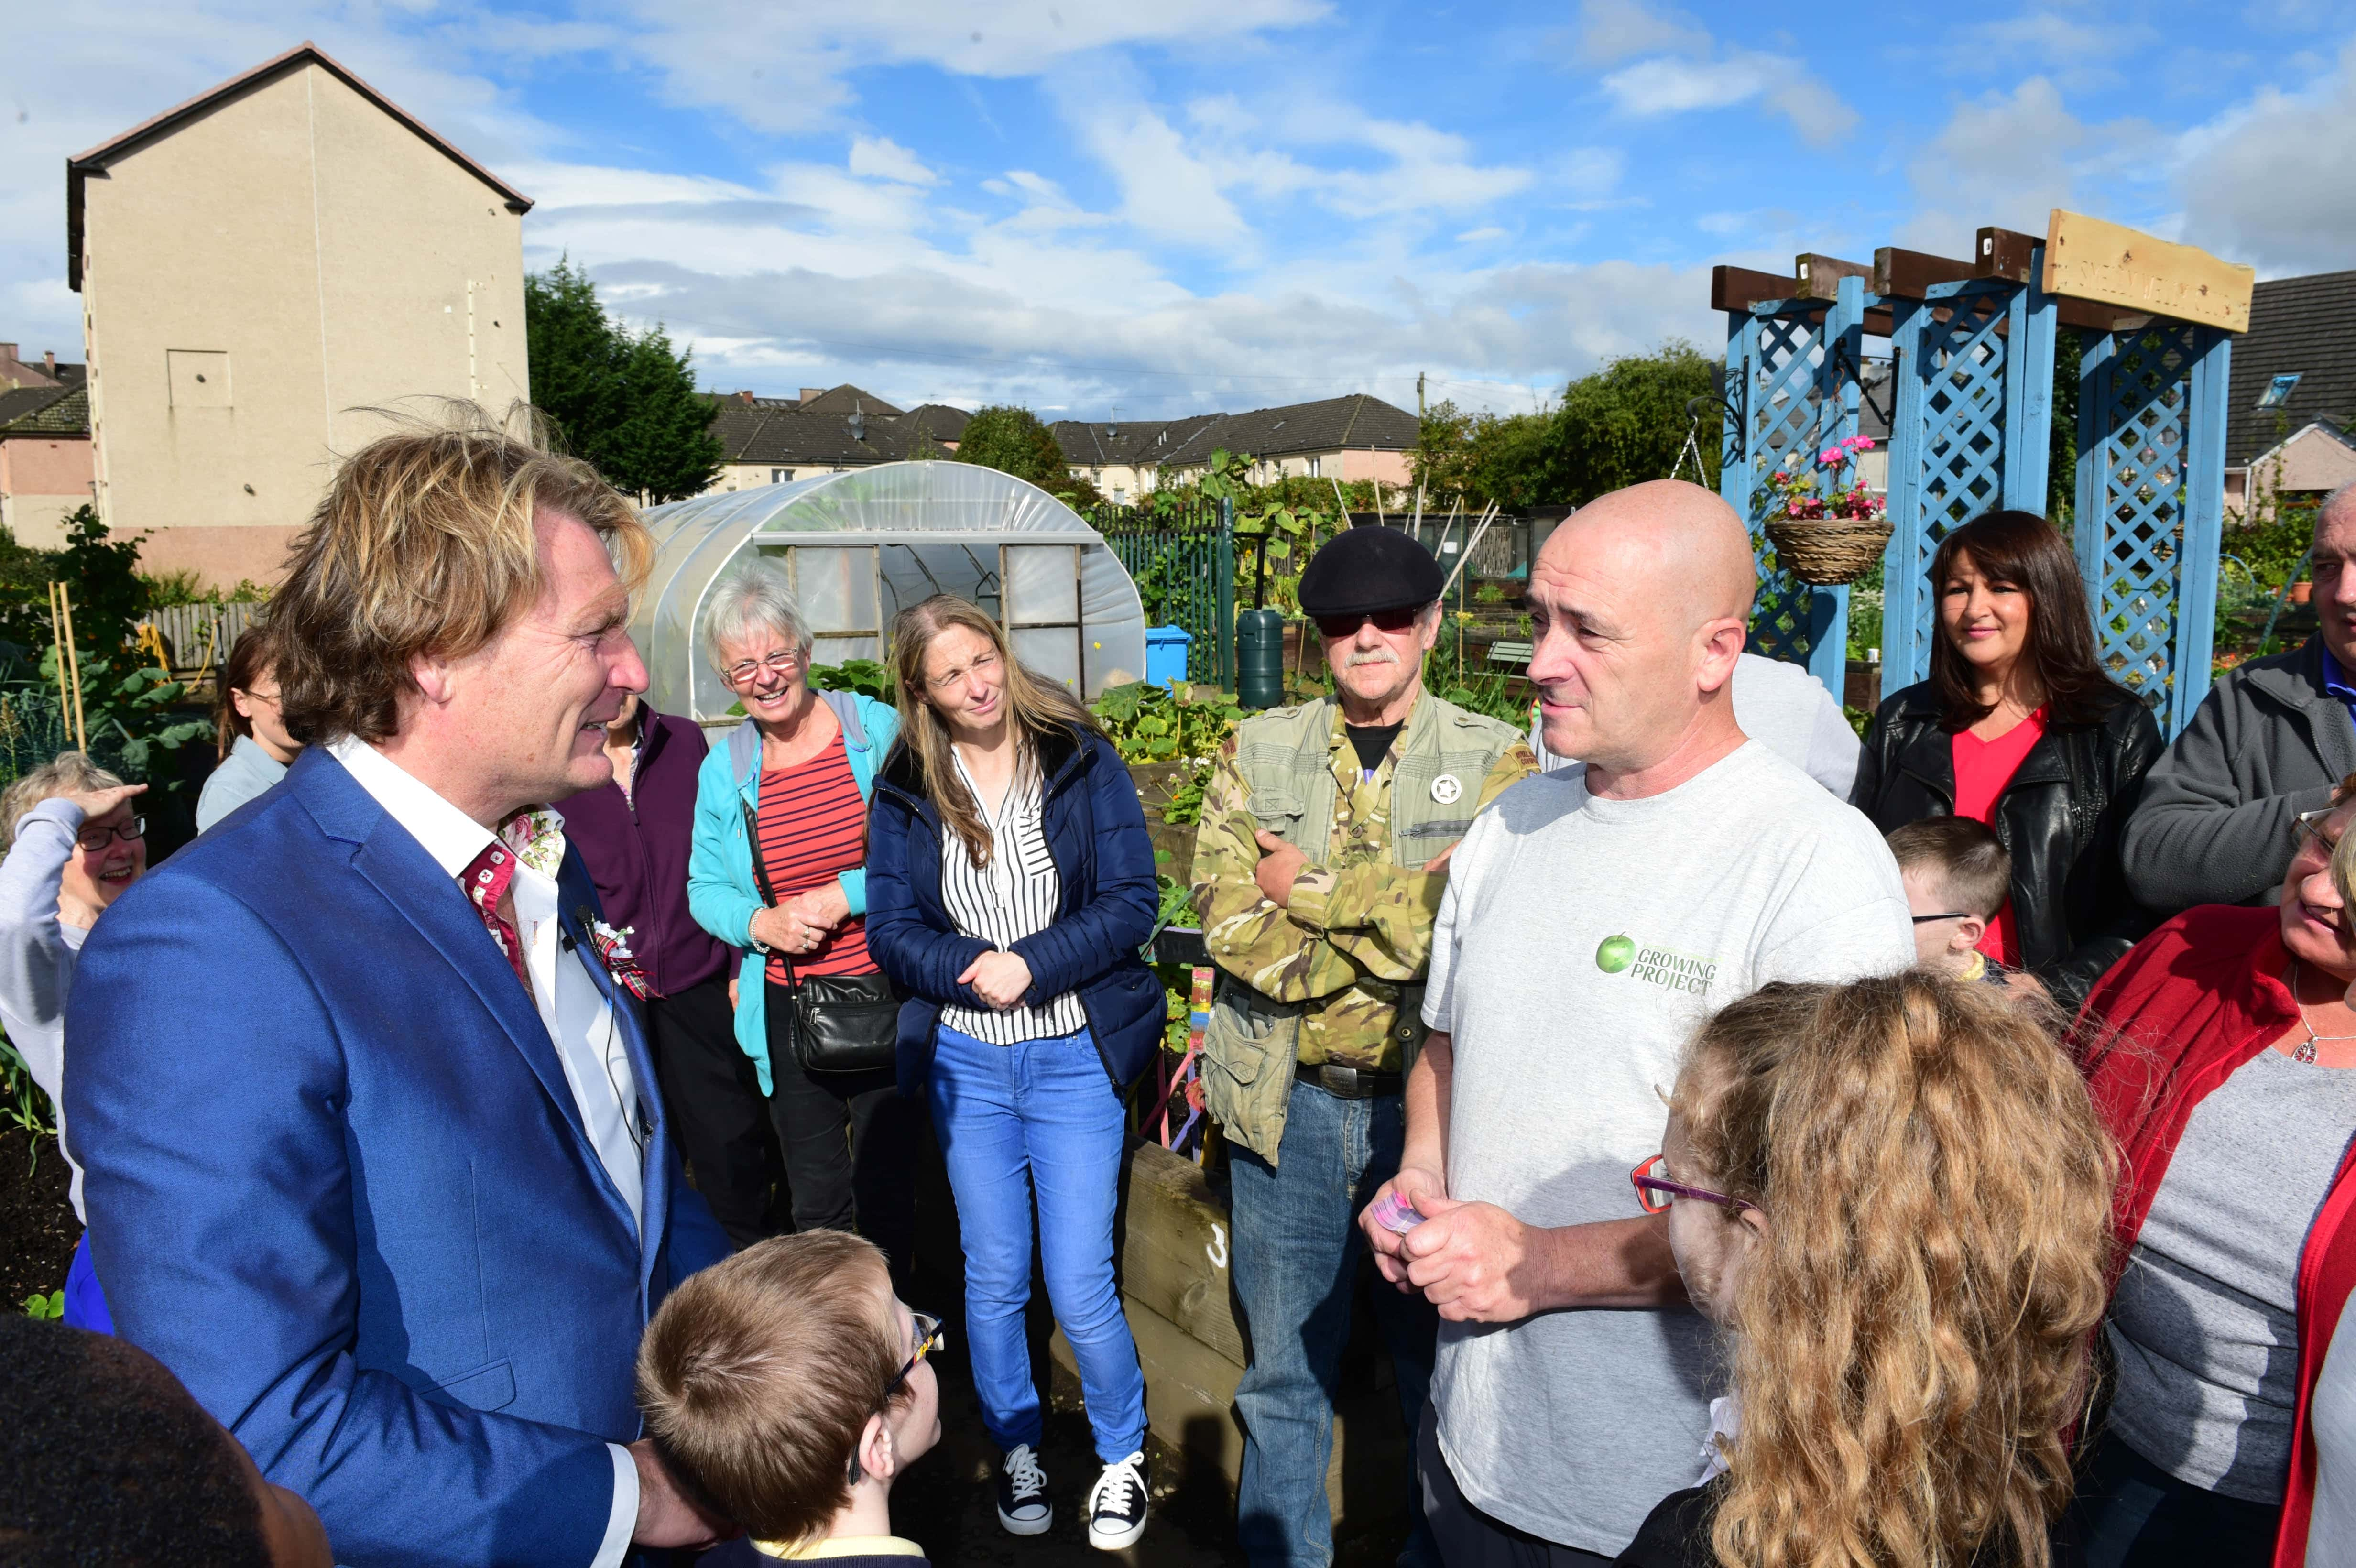 Shettleston Community Growing Project in Glasgow, TV Gardener David Domoney announces that the project are the winners of Cultivation Street and win £10,000. Pictured here with a shocked Kenny Mc Cubbin from the allotment and gardens team. Picture by Paul Chappells 11/09/17